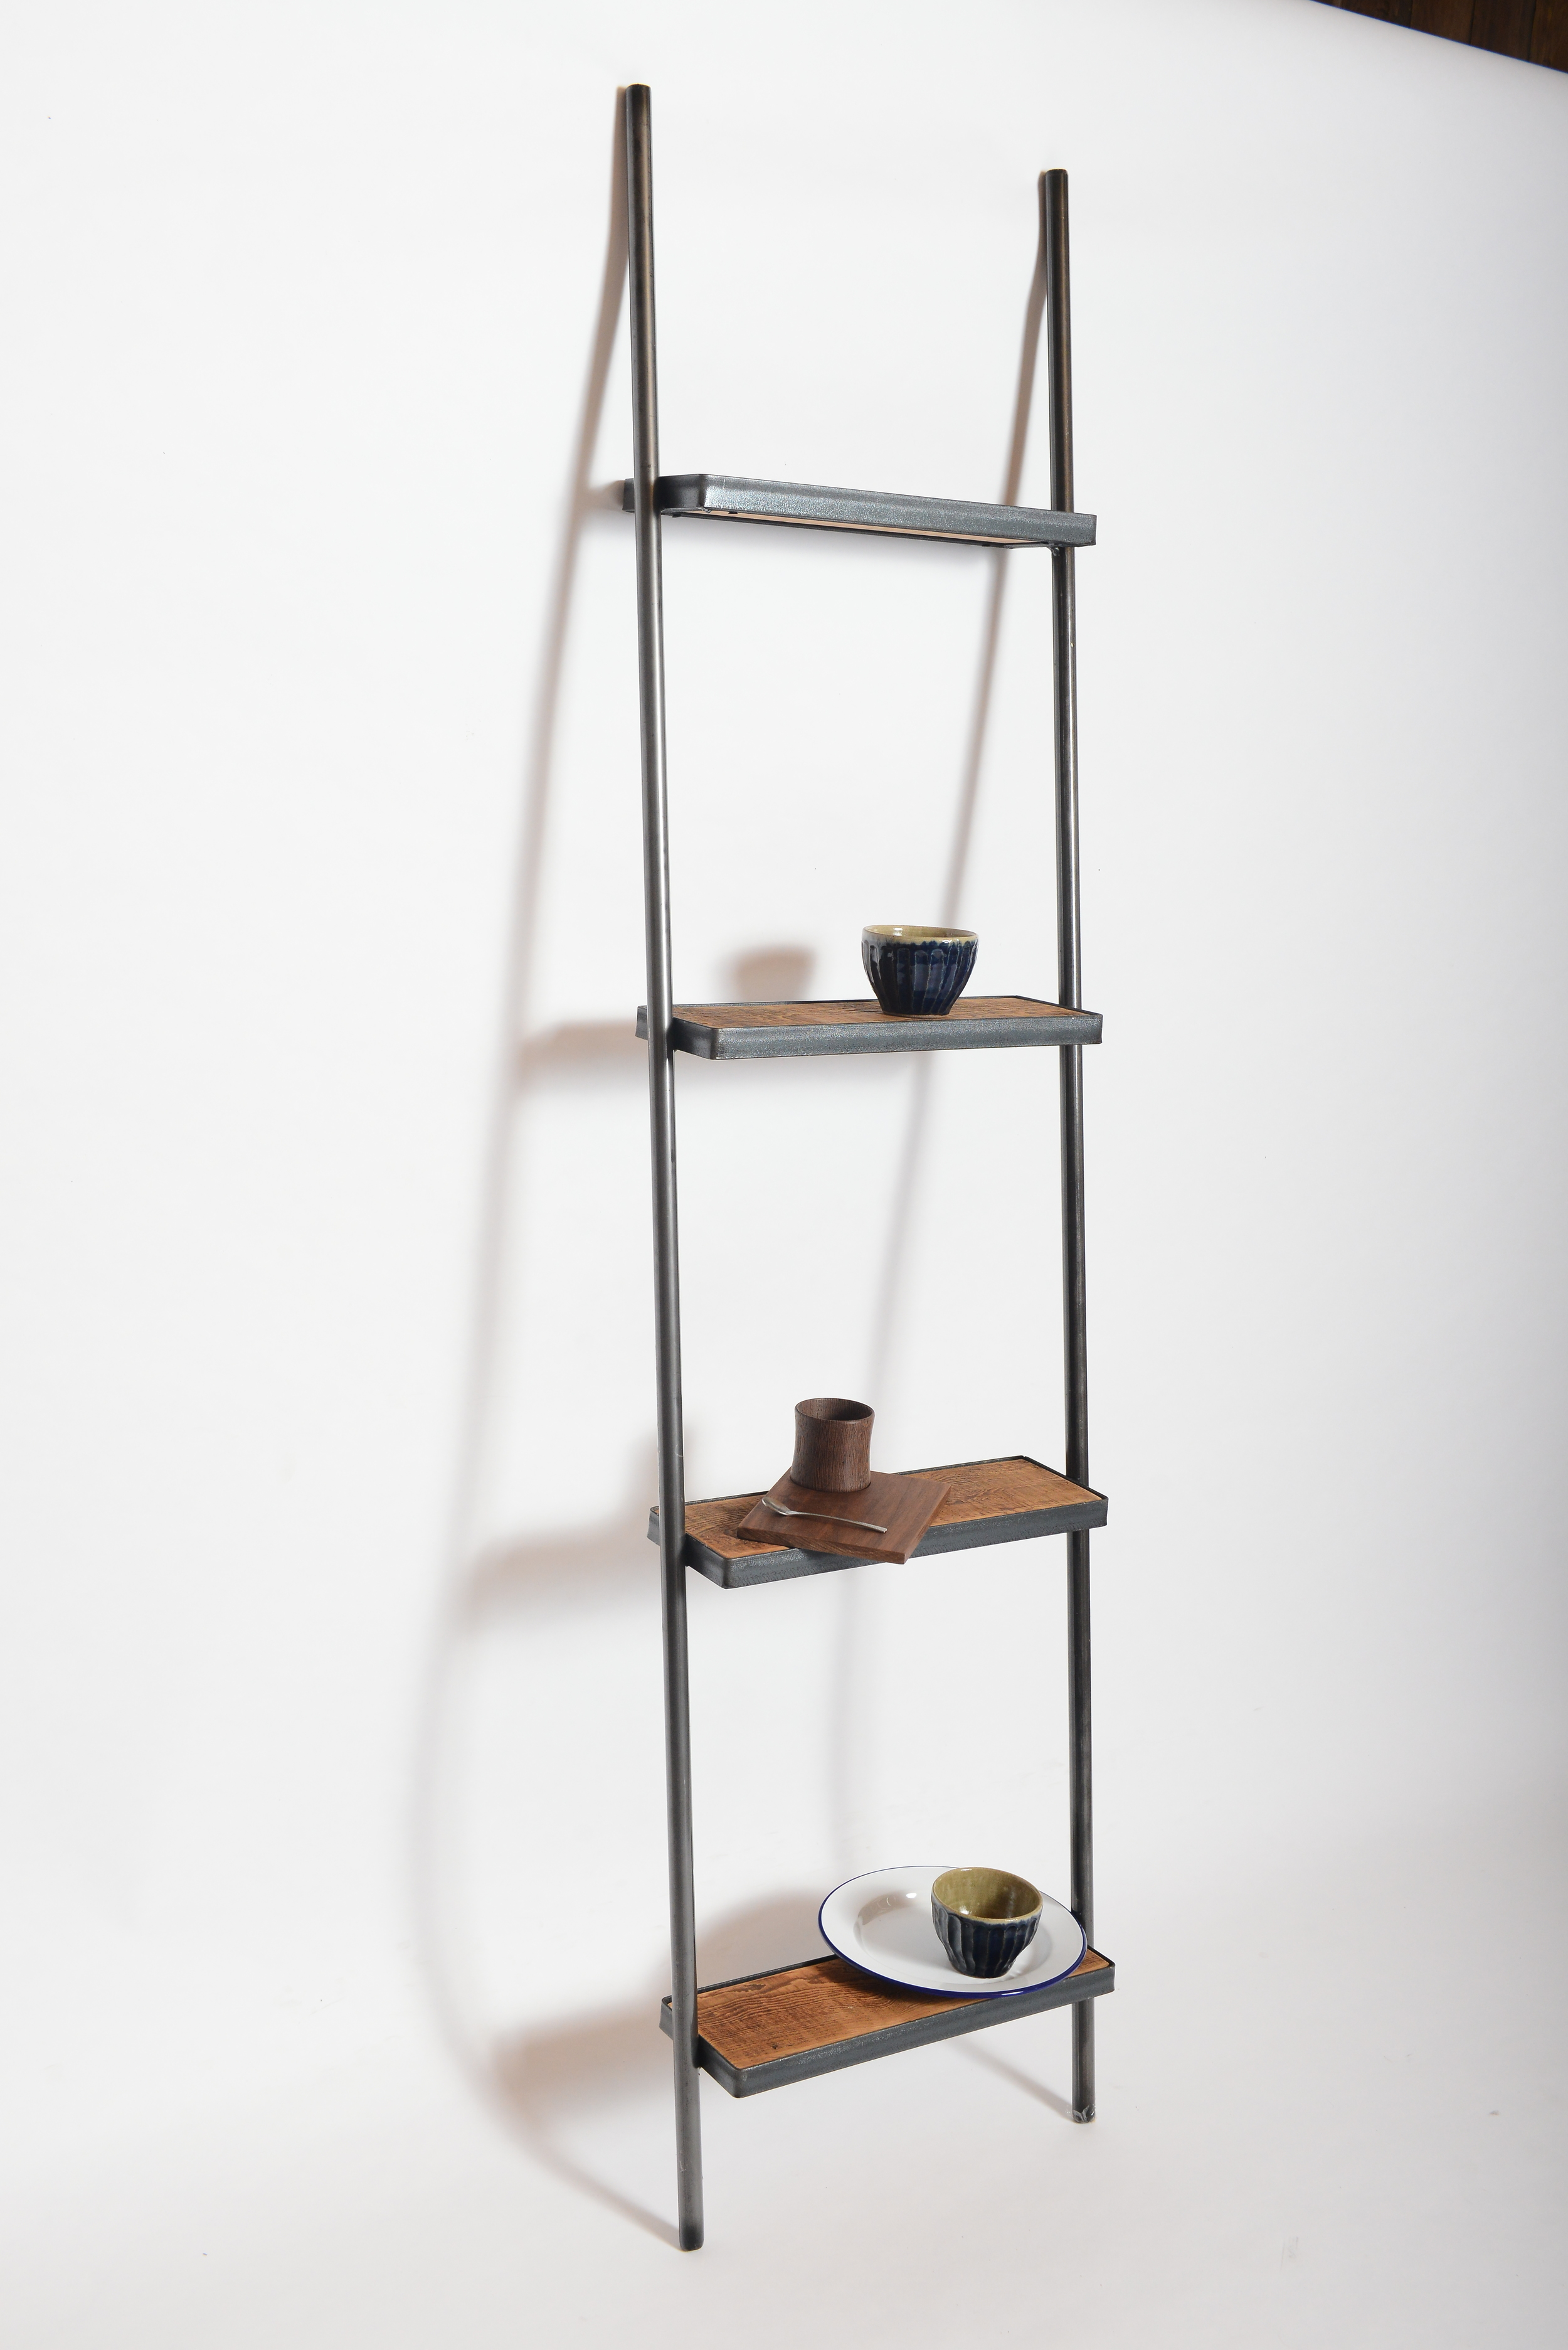 SH-I-04 Ladder shelf 02 H172*44 淺梯子置物架  NT 4,500